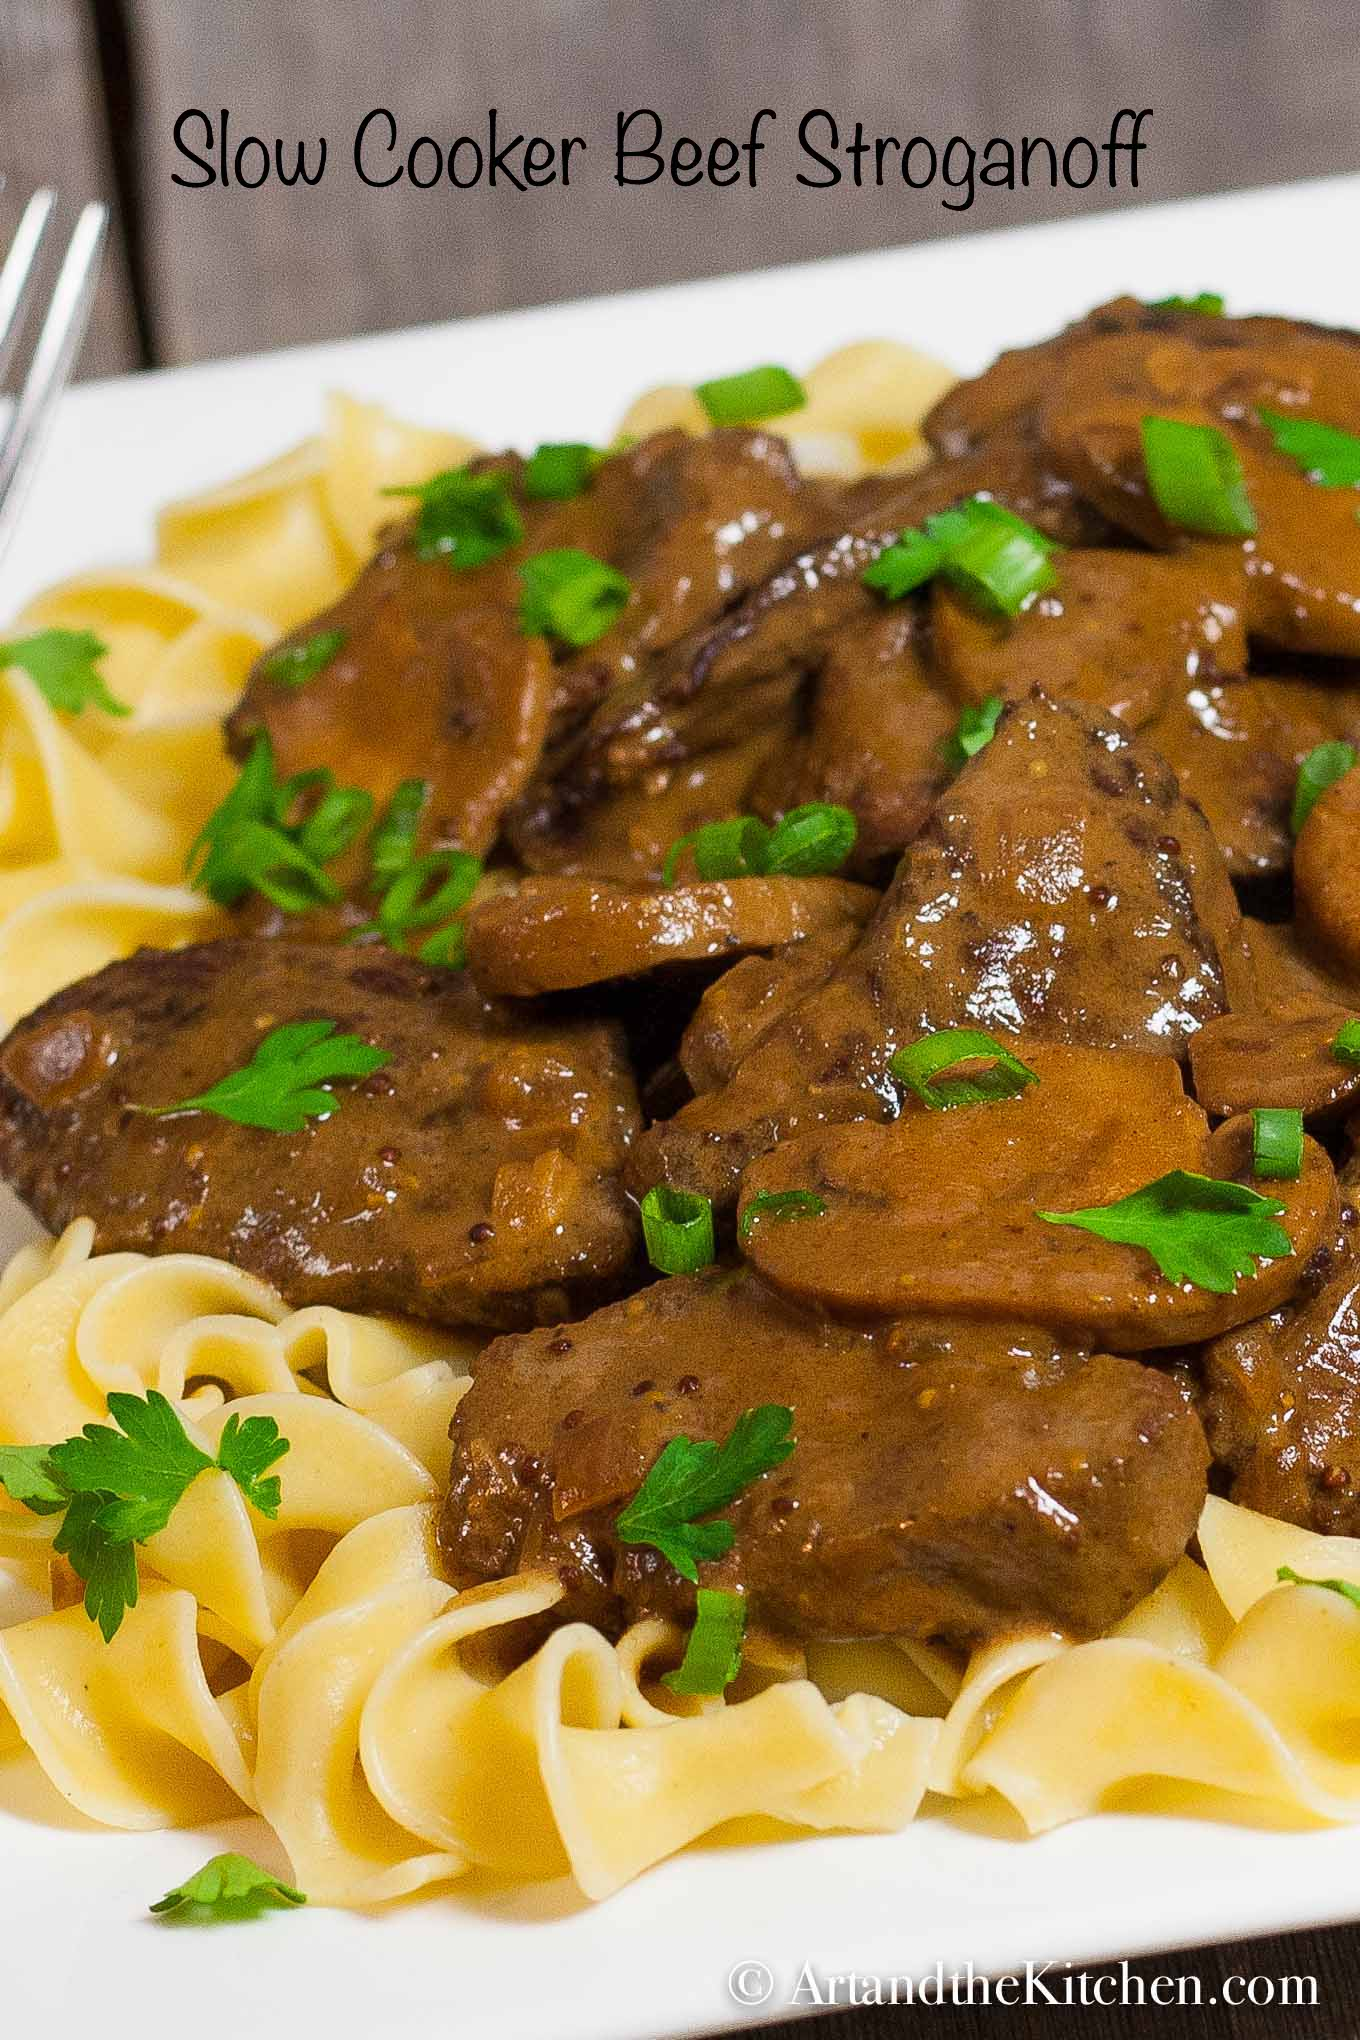 Slow Cooker Beef Stroganoff | Art and the Kitchen